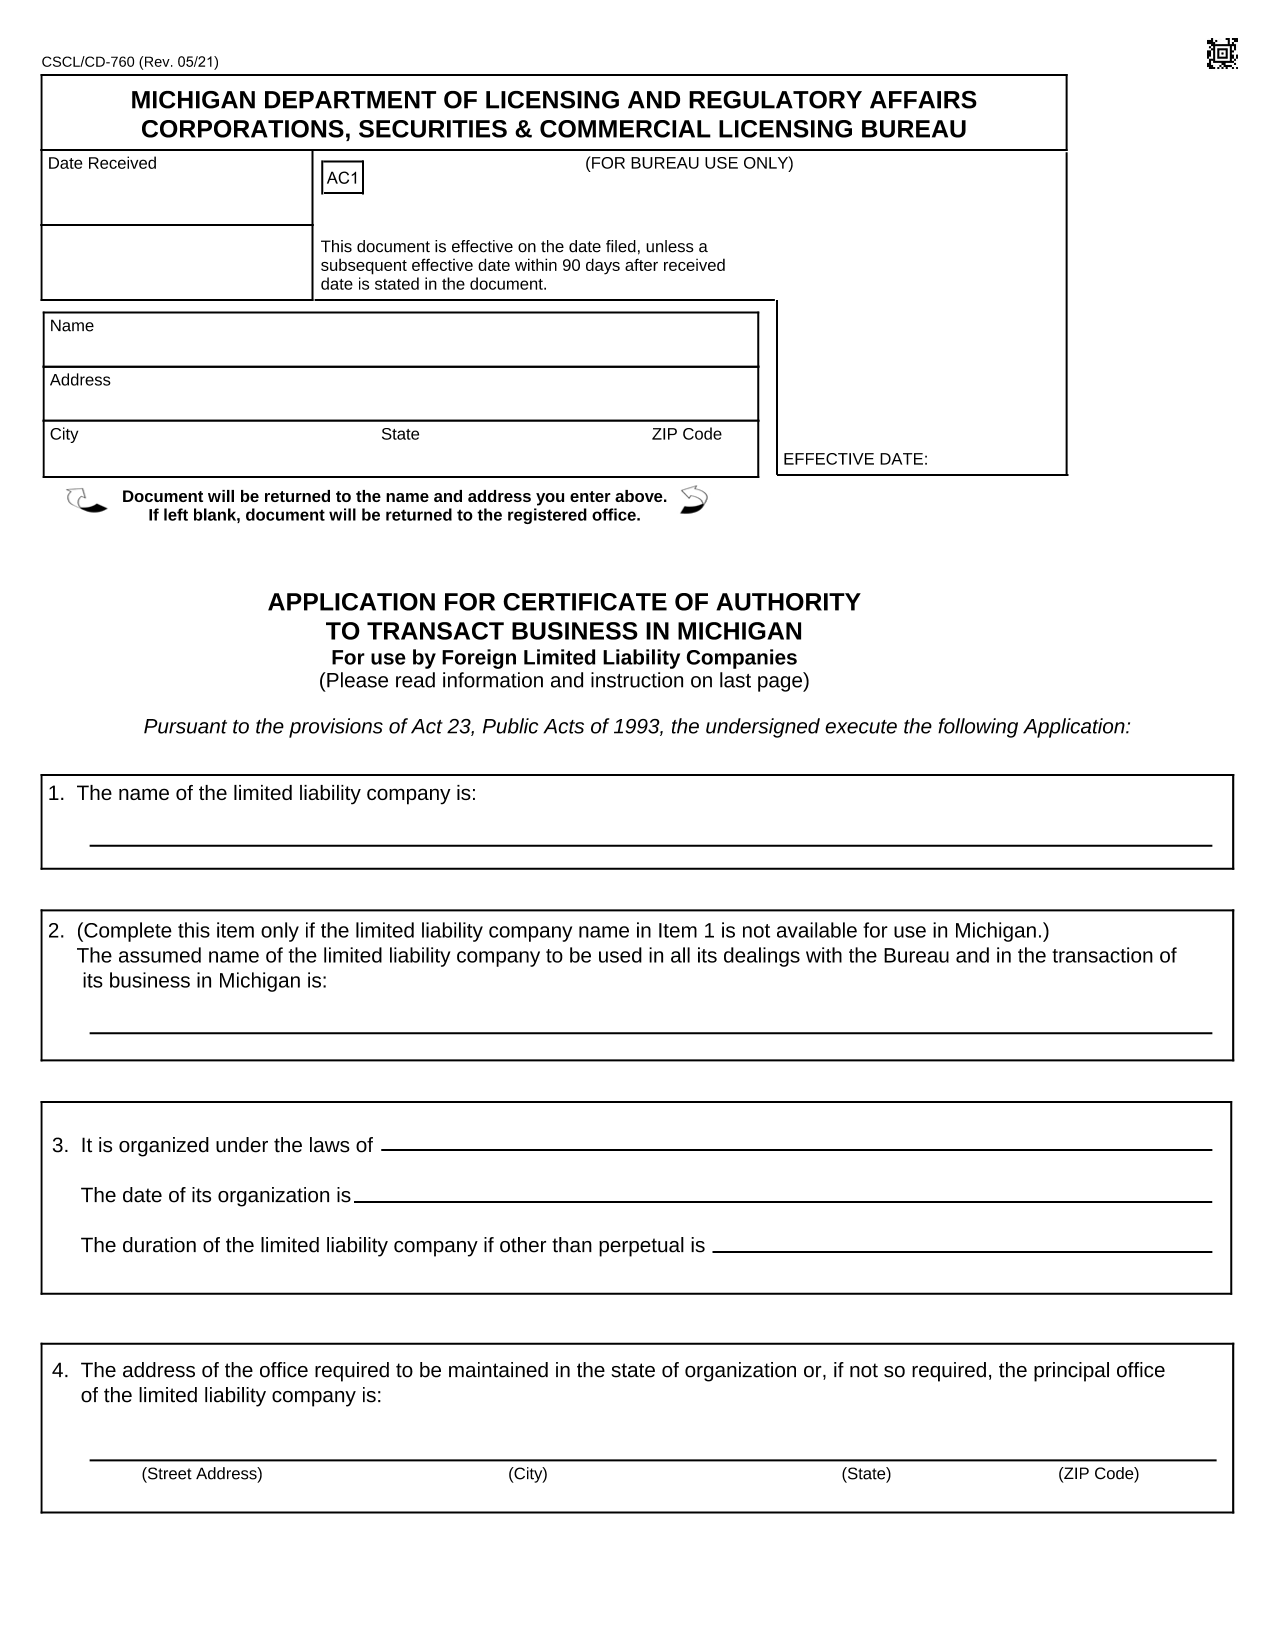 application-for-certificate-of-authority-to-transact-business-in-michigan